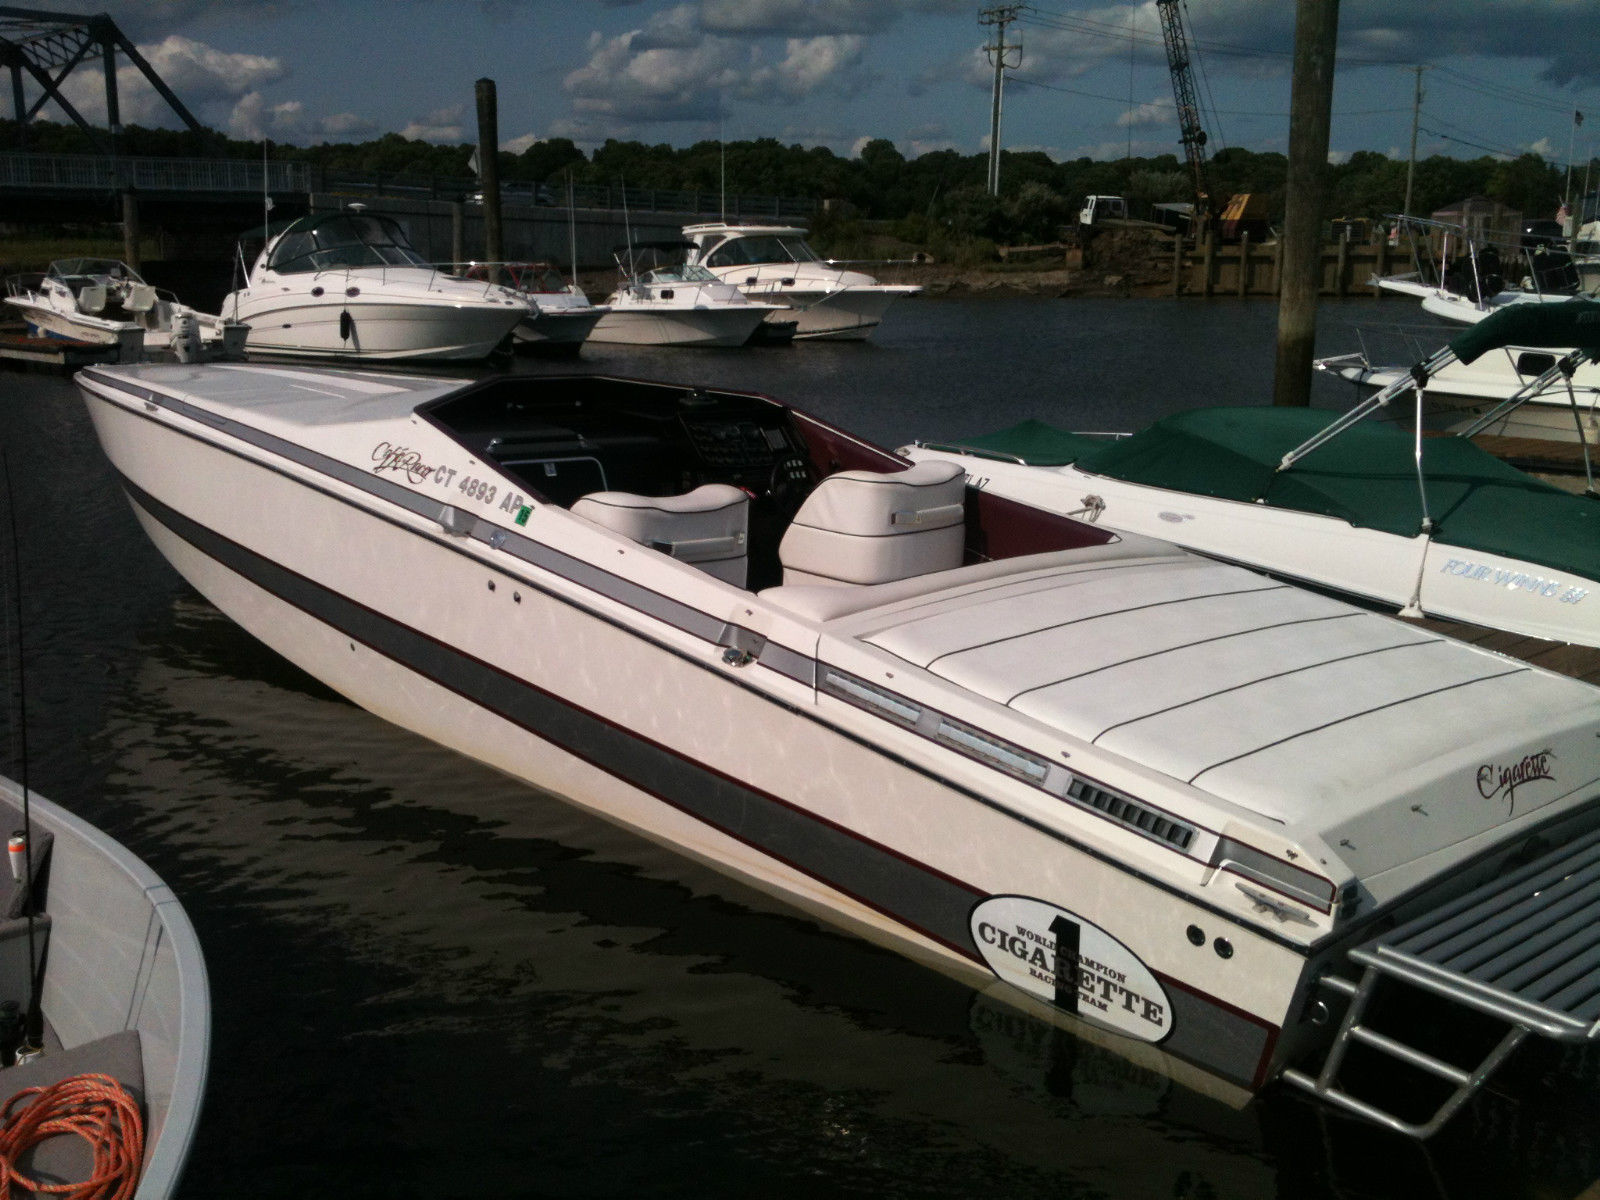 Cigarette CAFE RACER 1987 for sale for $23,000 - Boats-from-USA.com